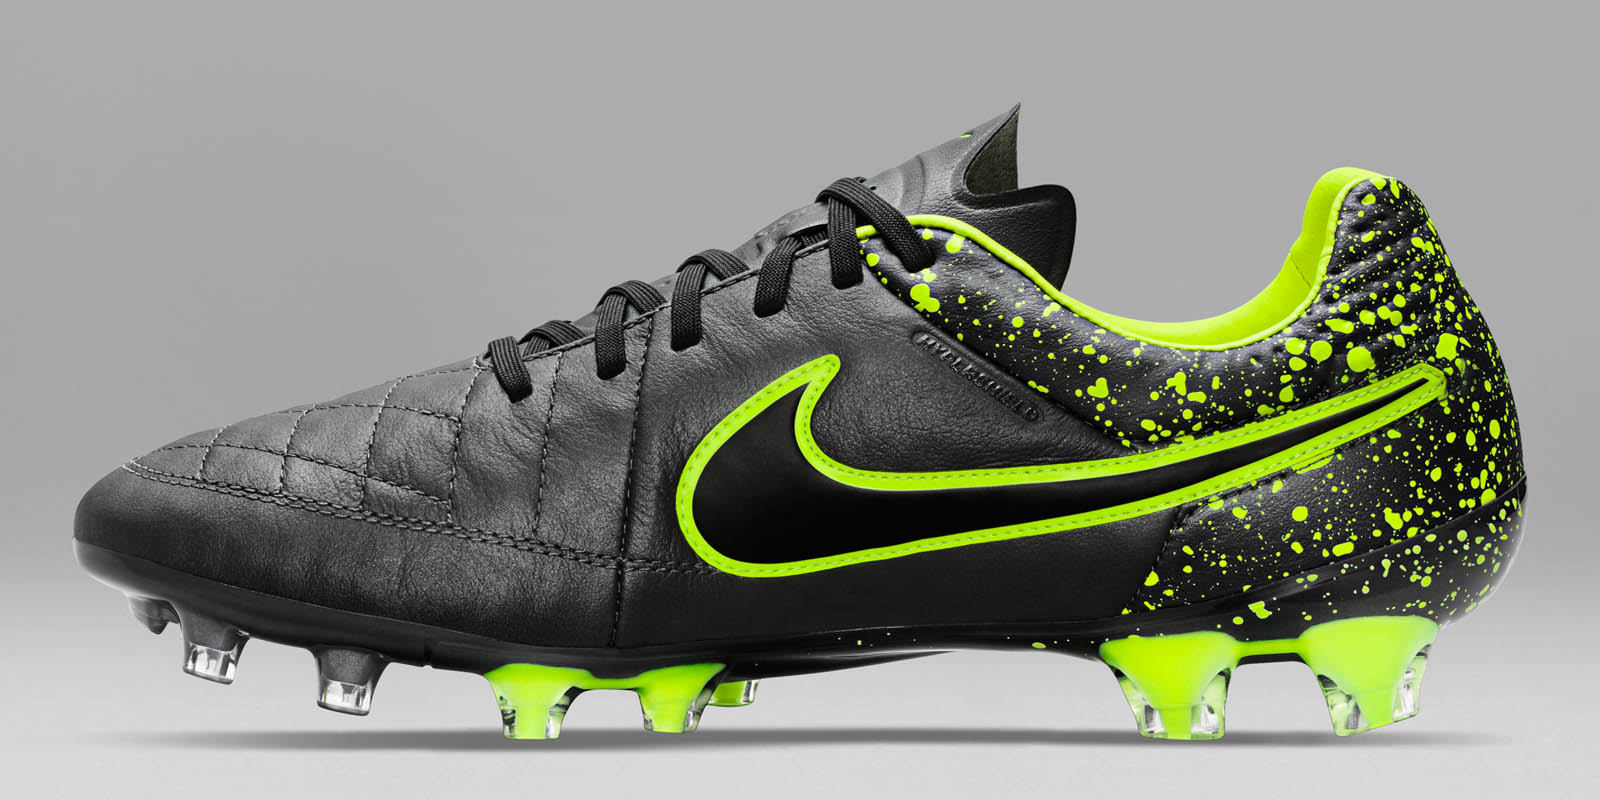 Made for ultimate control, the Nike Tiempo Legend V 2015 Boots feature a  super soft Kangaroo leather upper with Dry Tech package for less water  uptake and ...